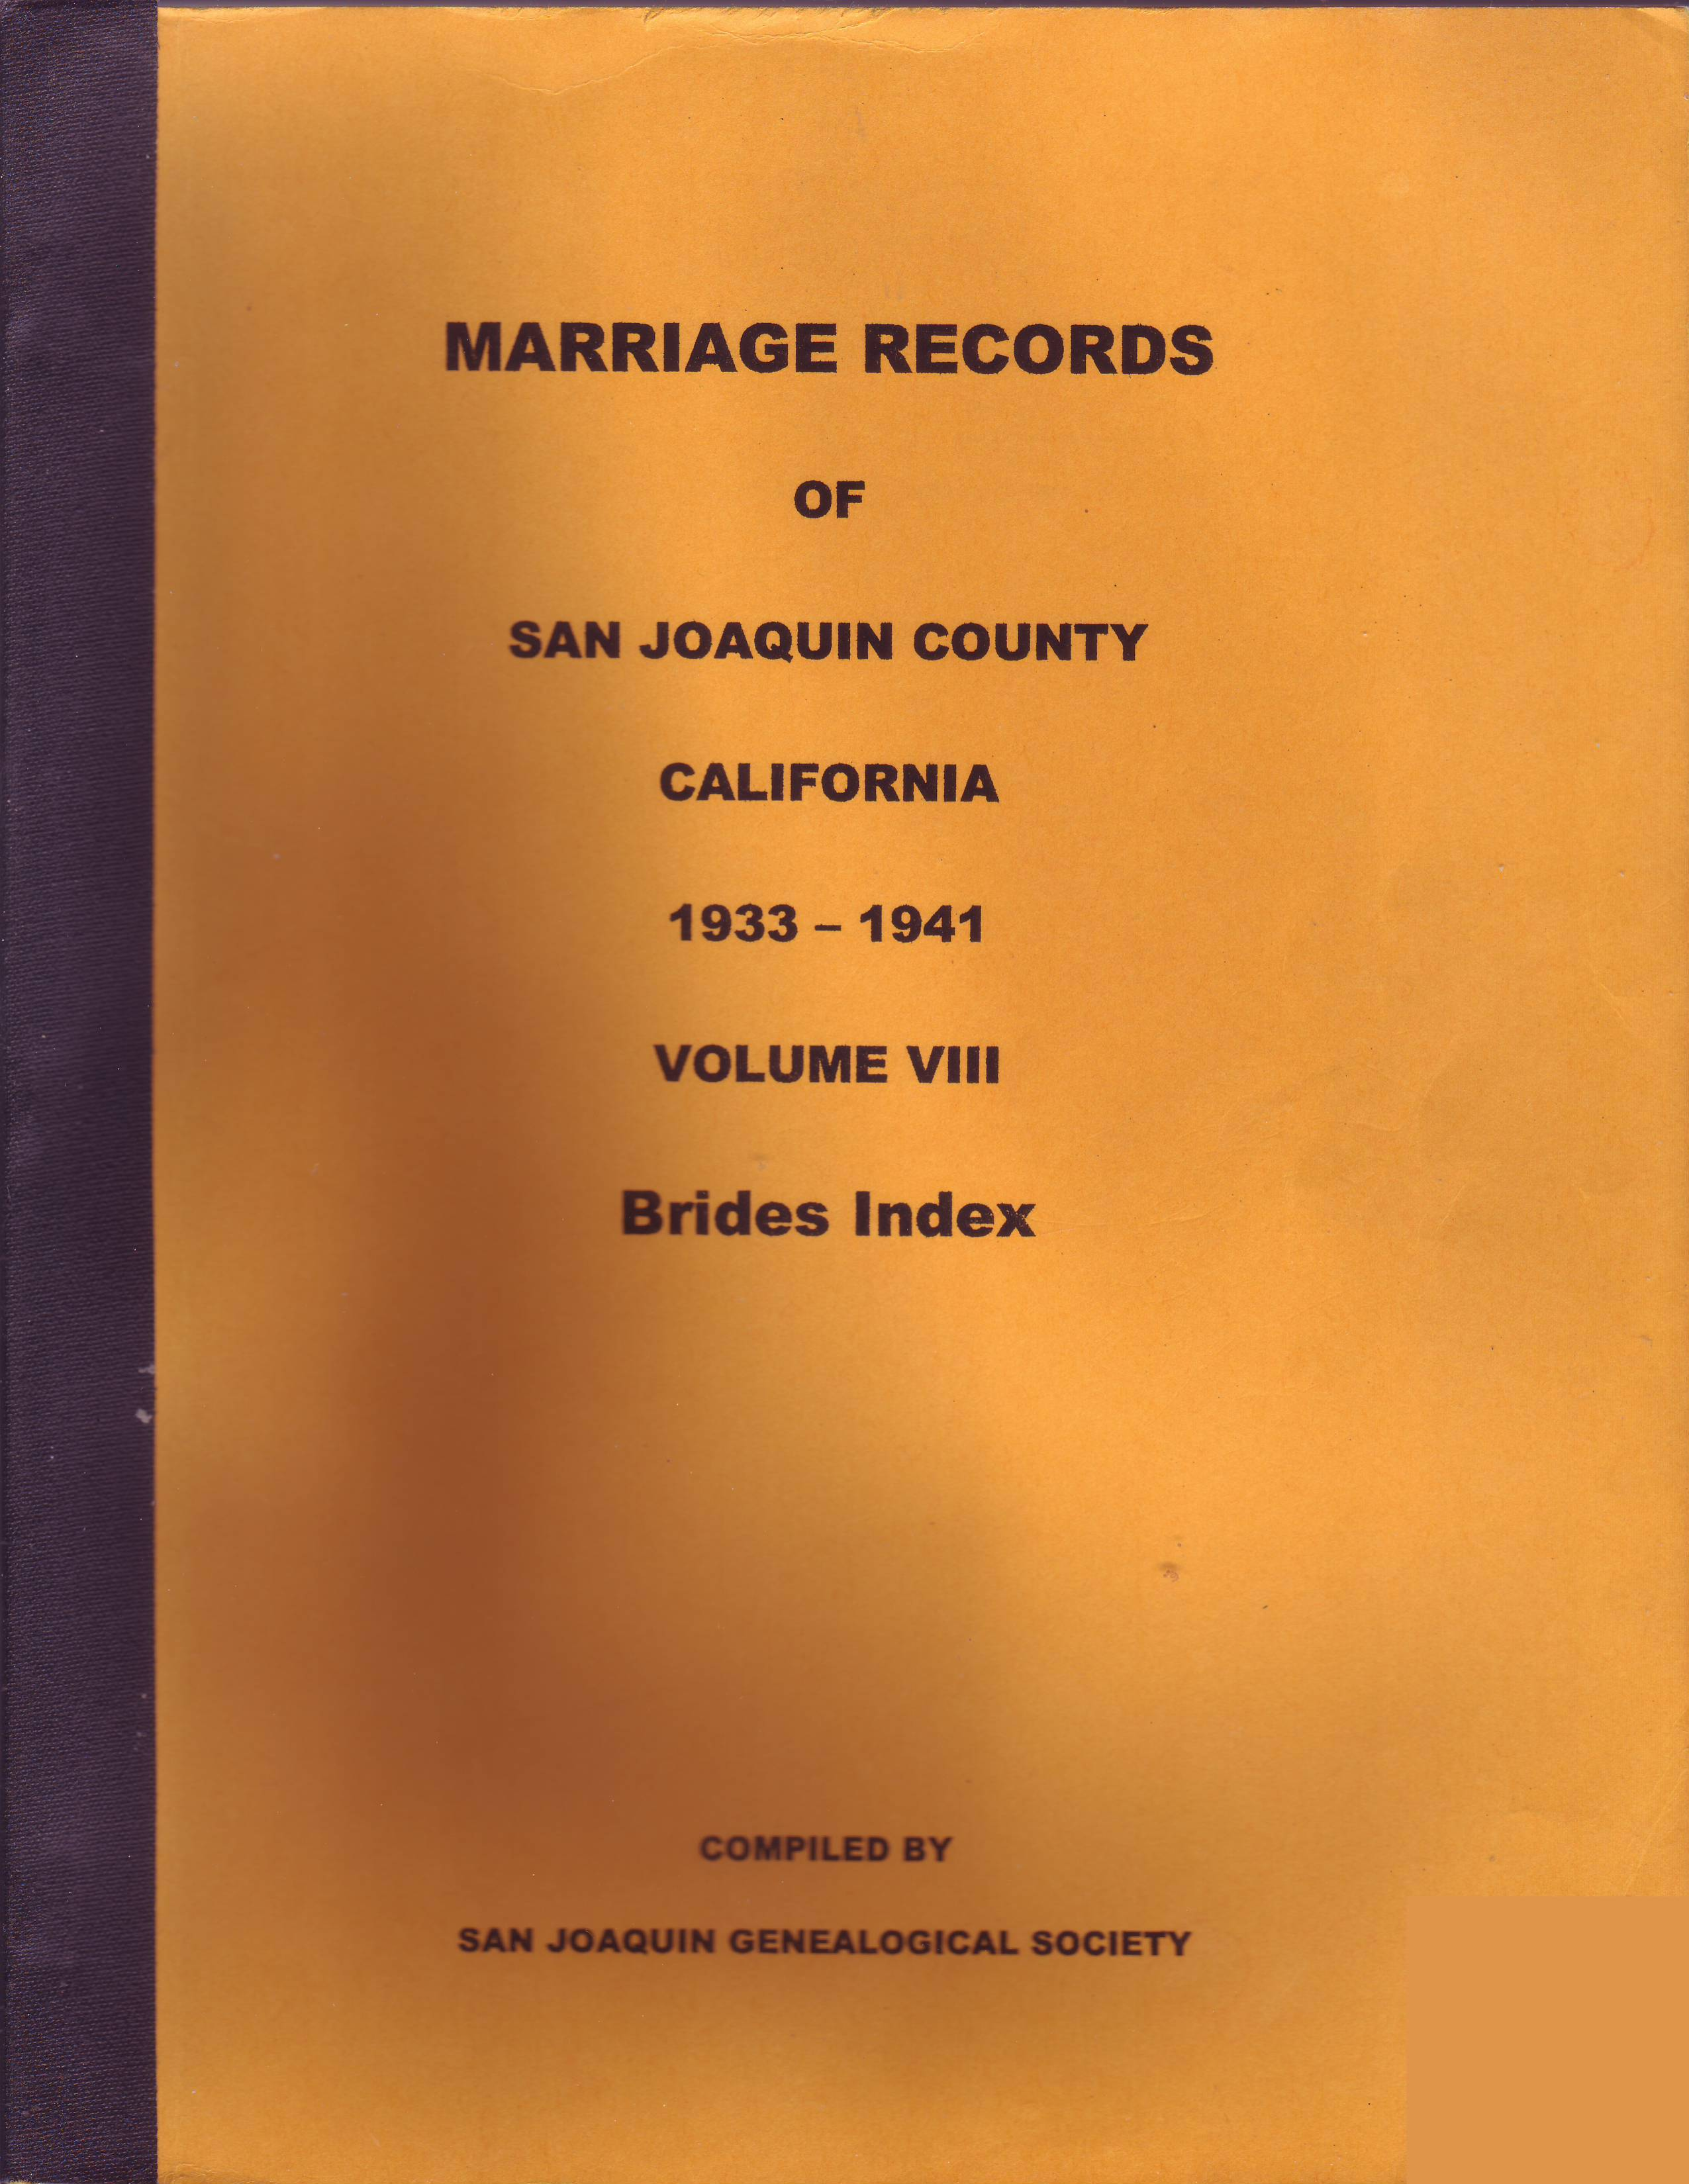 Marriage Records of San Joaquin County, California, 1933–1941, Volume VIII, Brides Index